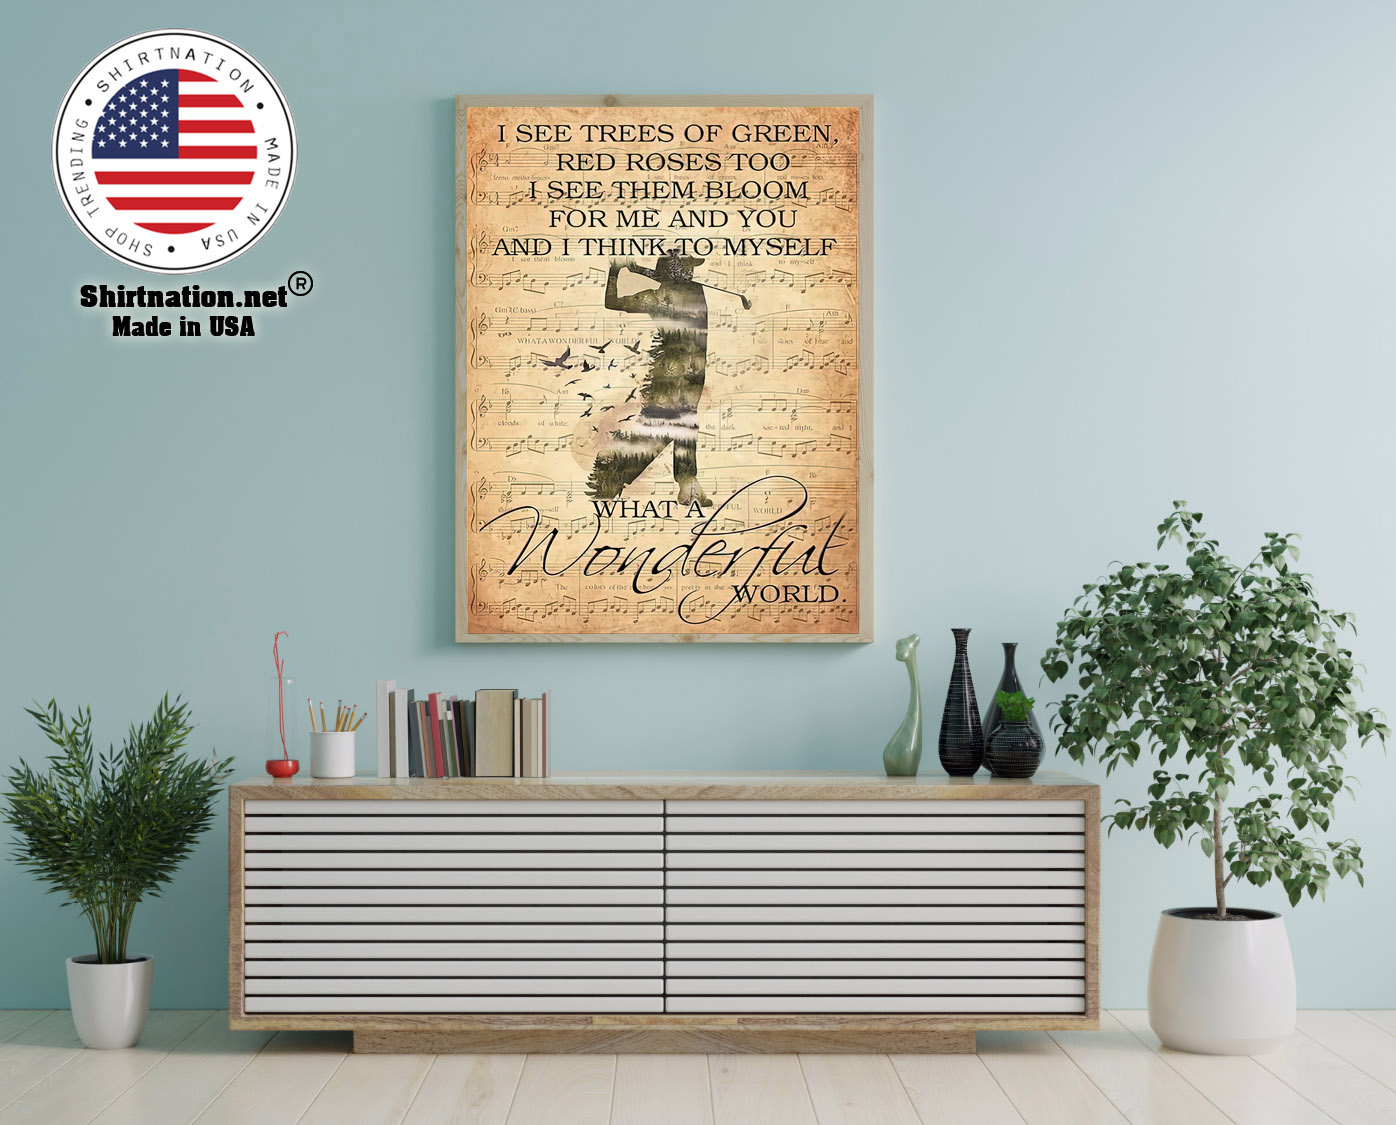 Golf I see trees of green red roses too I see them bloom for me and you poster 12